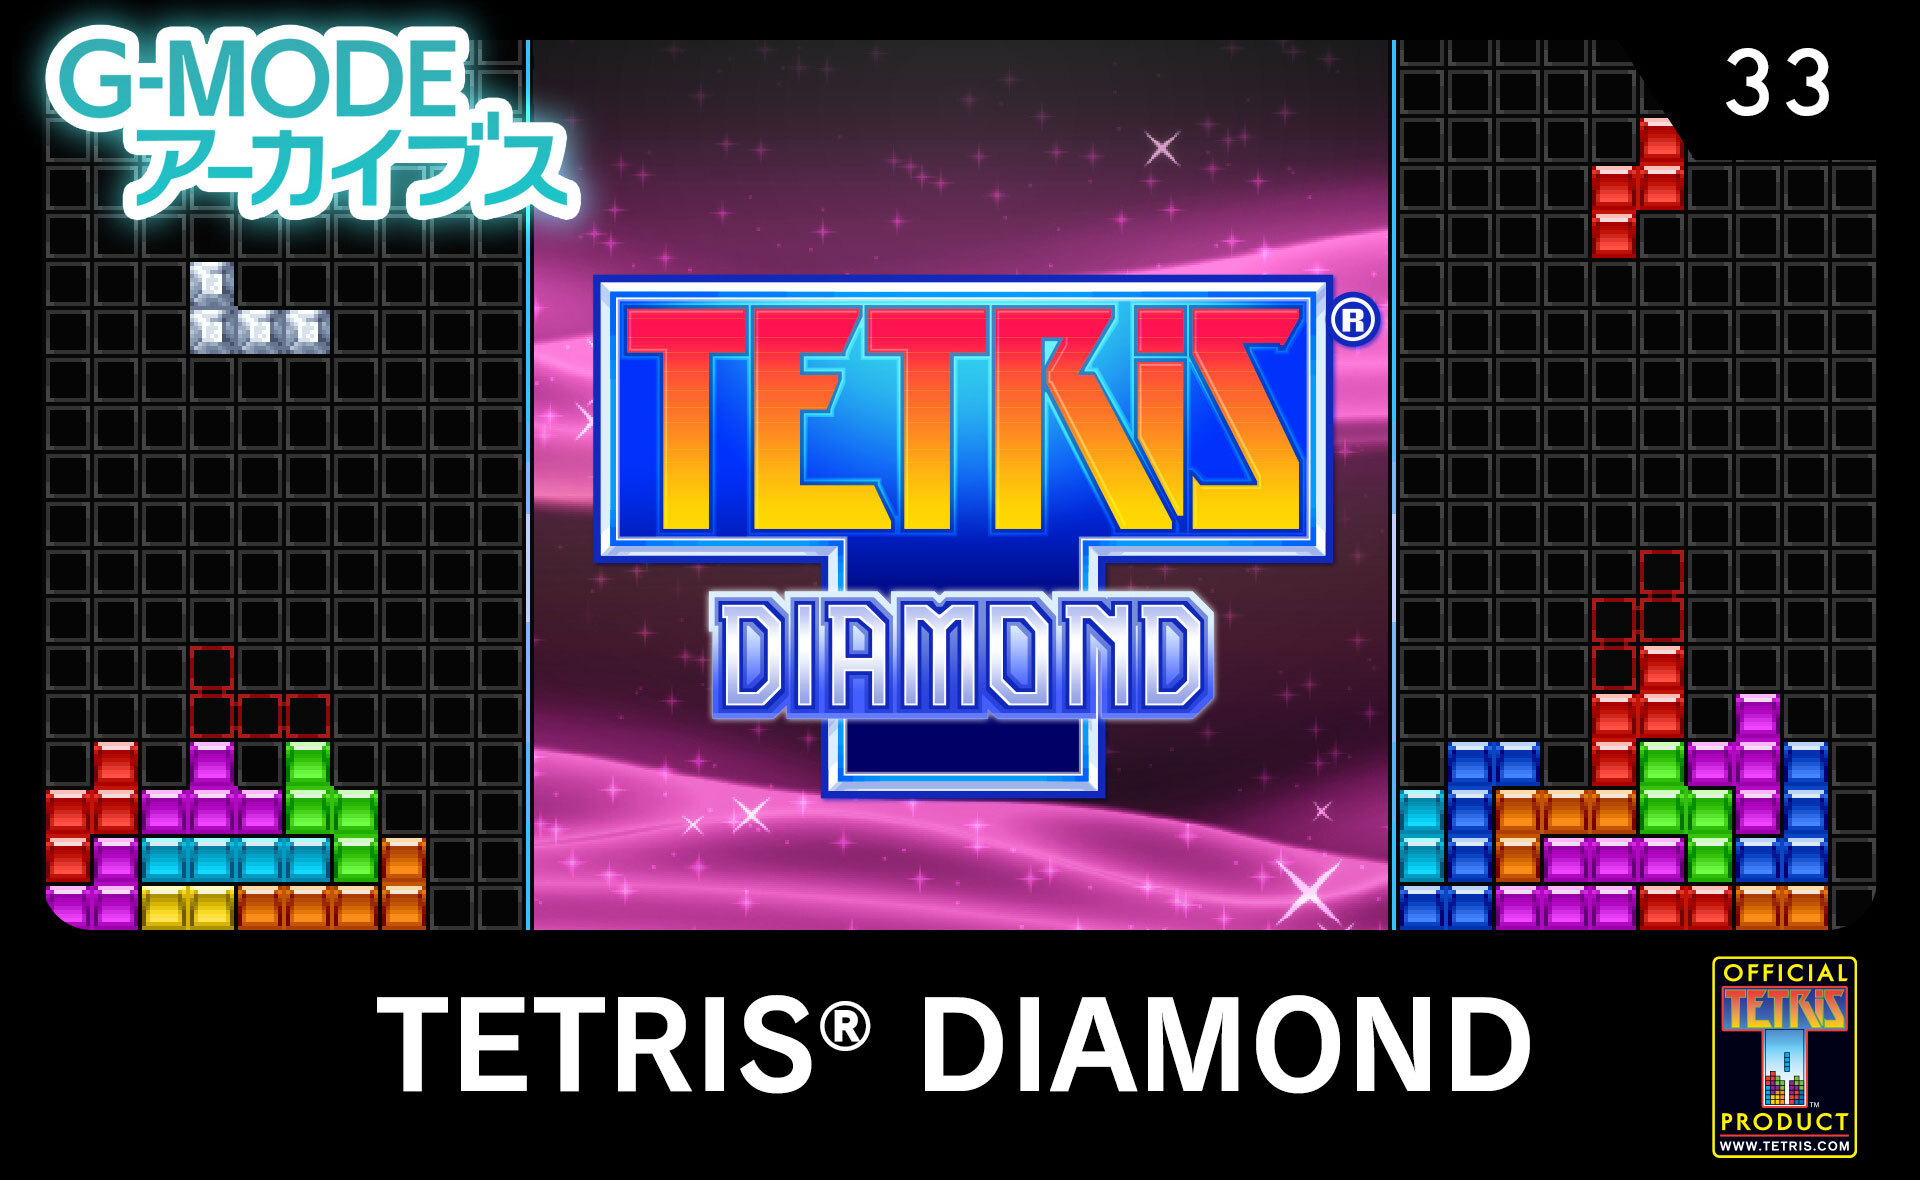 TETRIS® DIAMOND